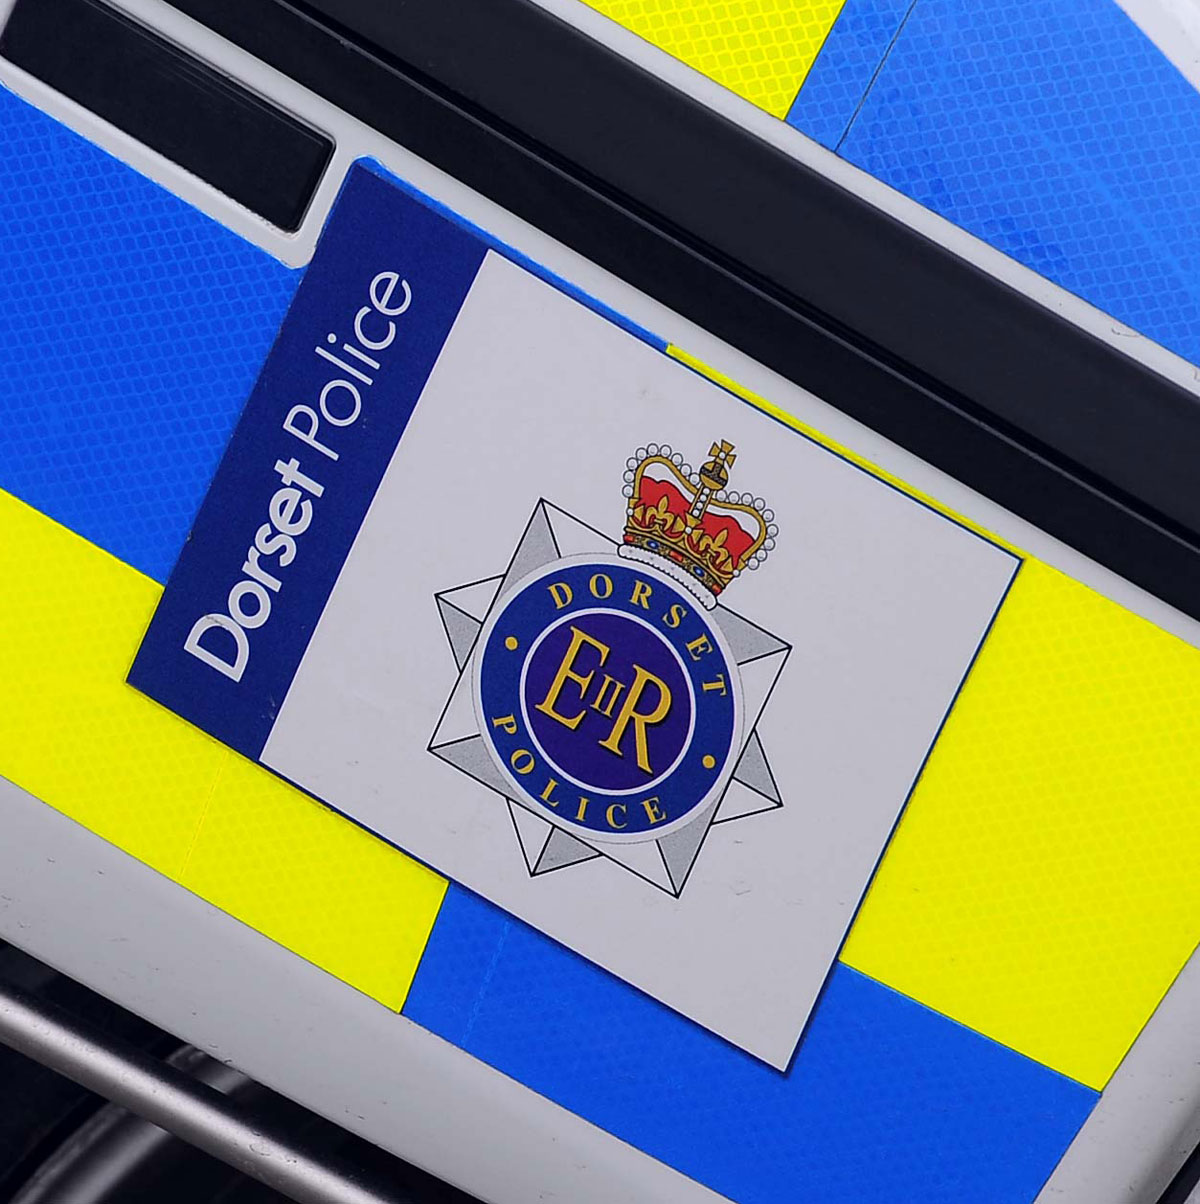 Police hunt man after four reports of indecent exposure in Dorchester